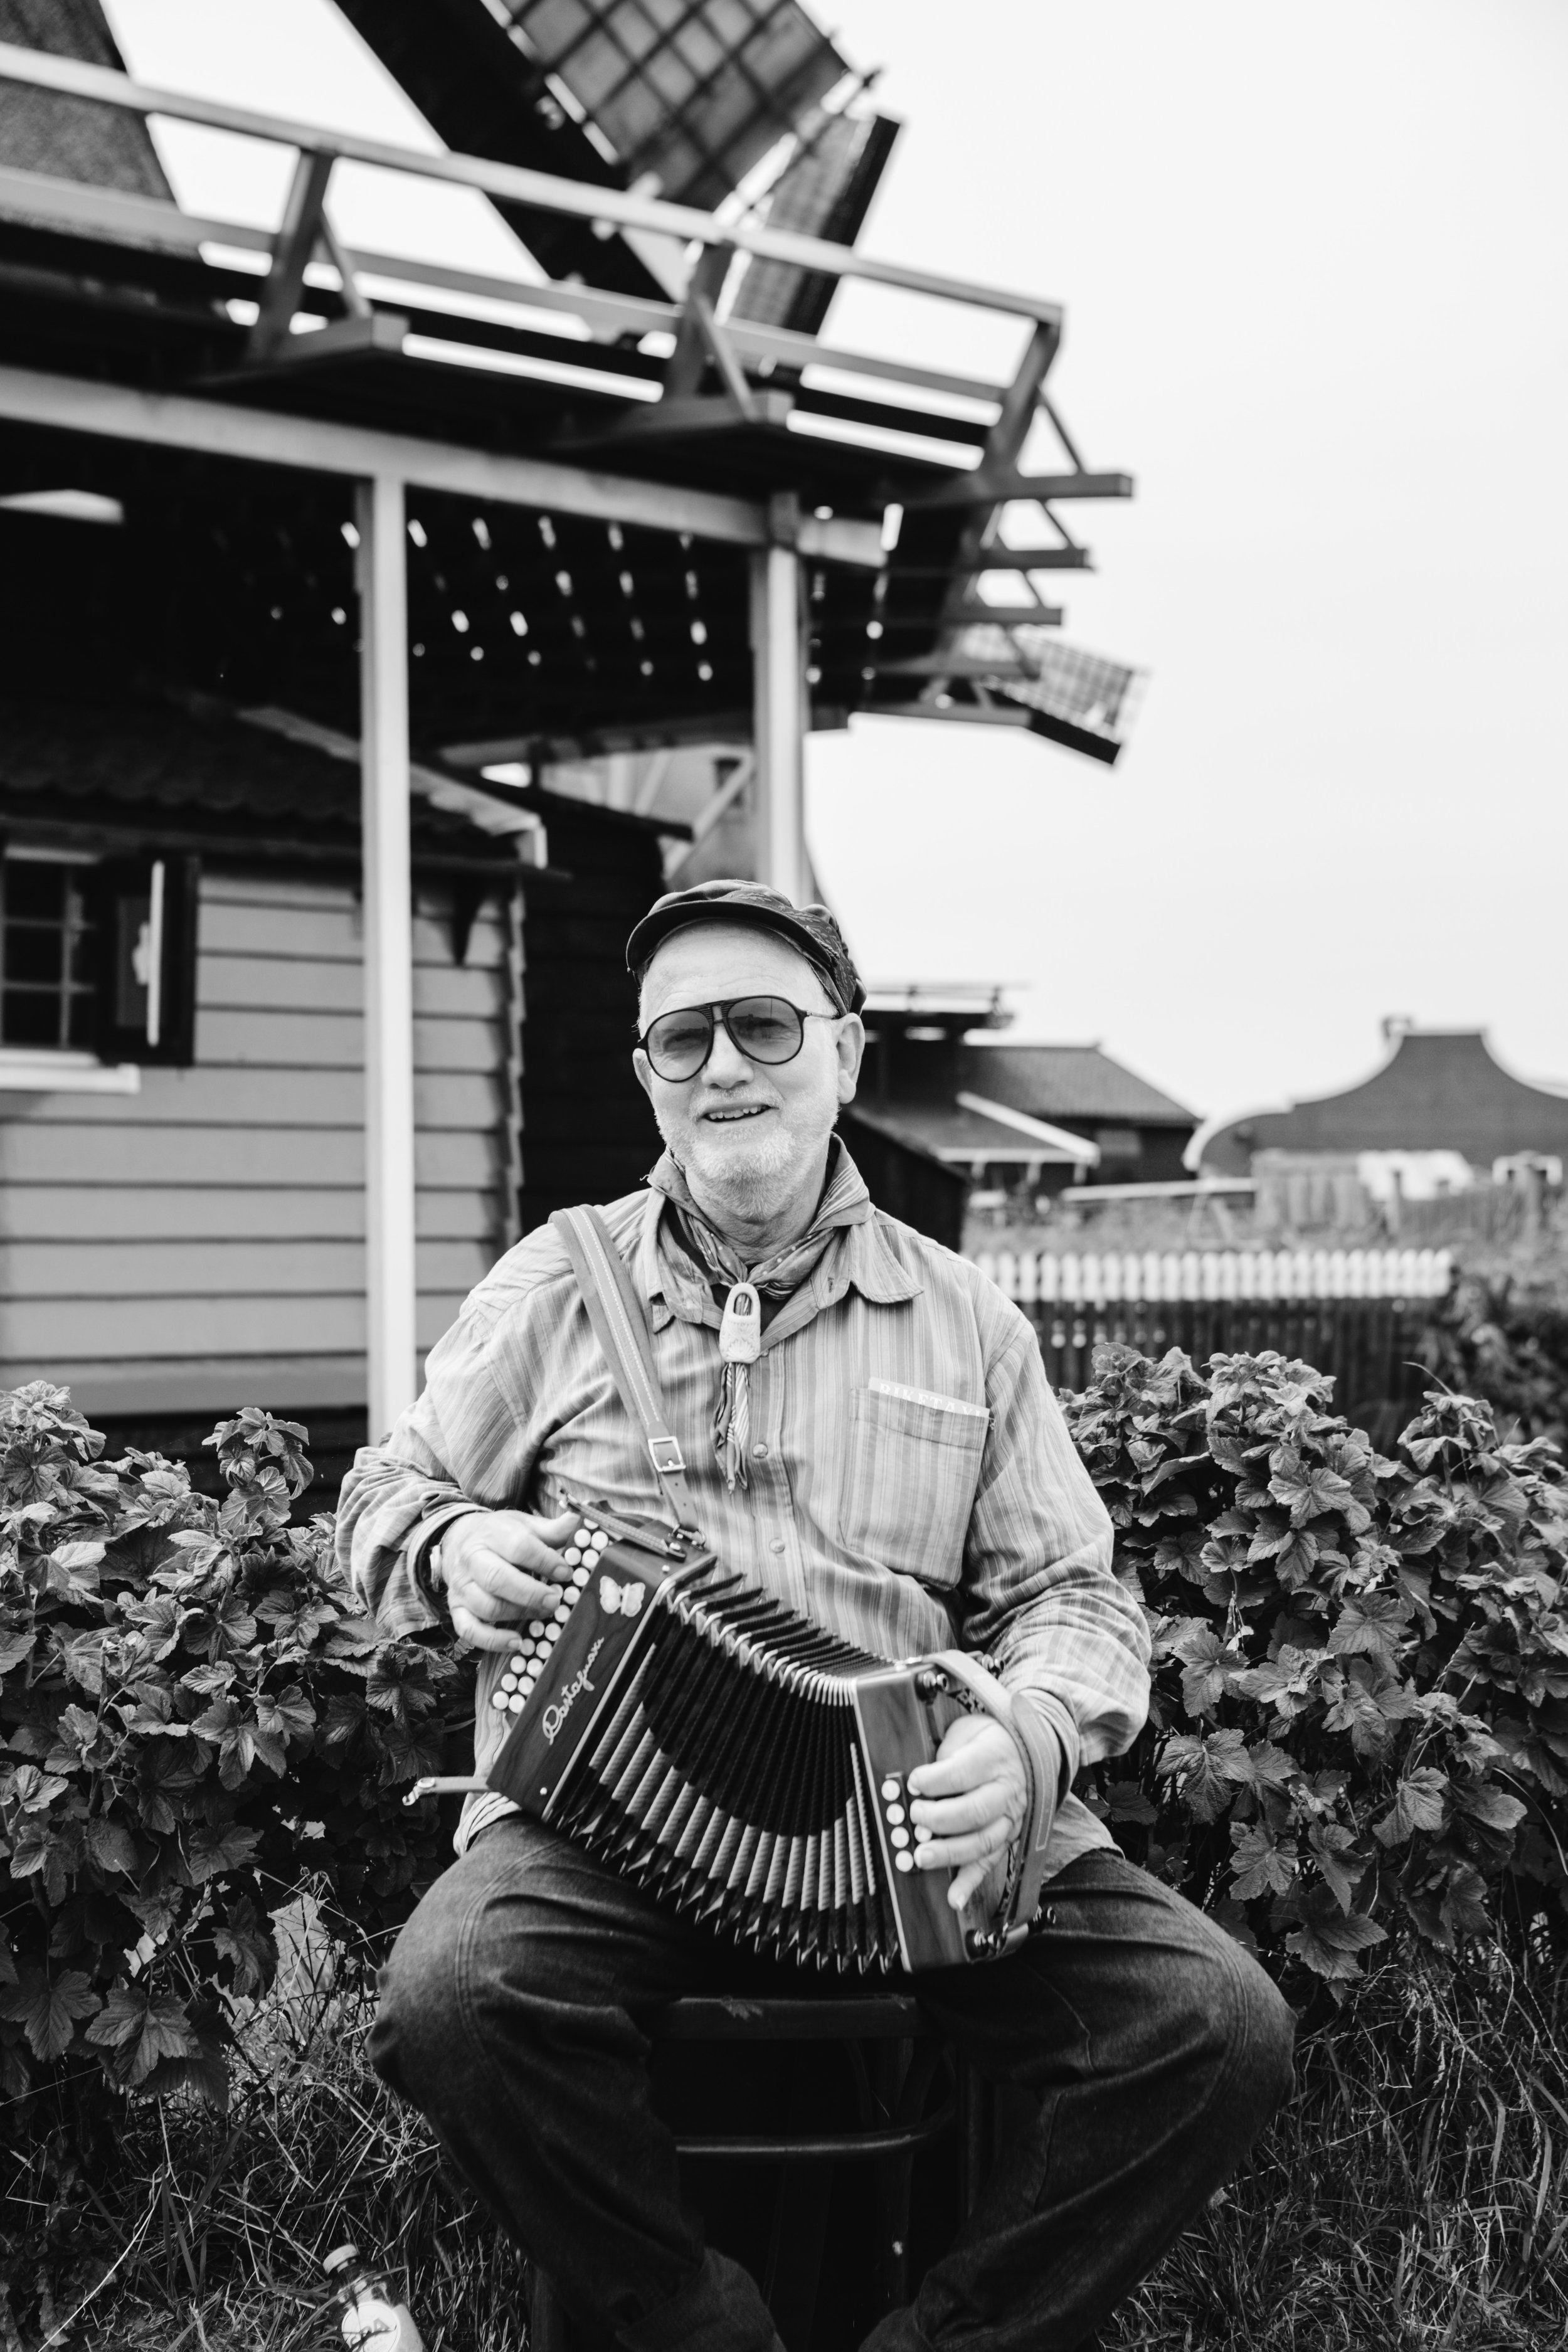 Dutch accordion musician Volendam Netherlands Toronto Food Travel Photographers - Suech and Beck